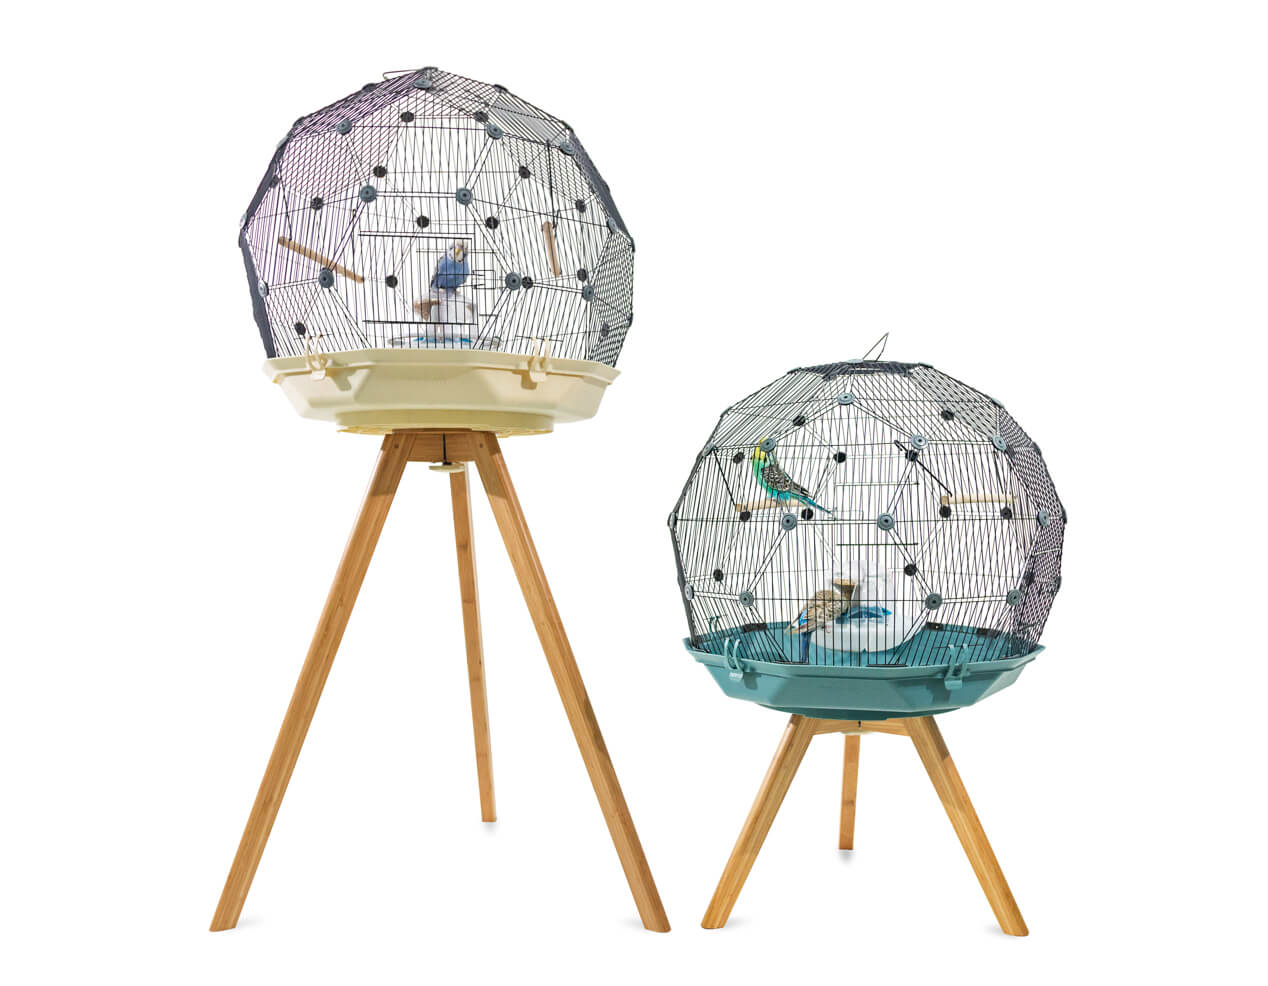 A Geo Bird Cage in cream on a standard height wooden bird cage stand next to a Geo Bird cage in teal on a low height wooden bird cage stand